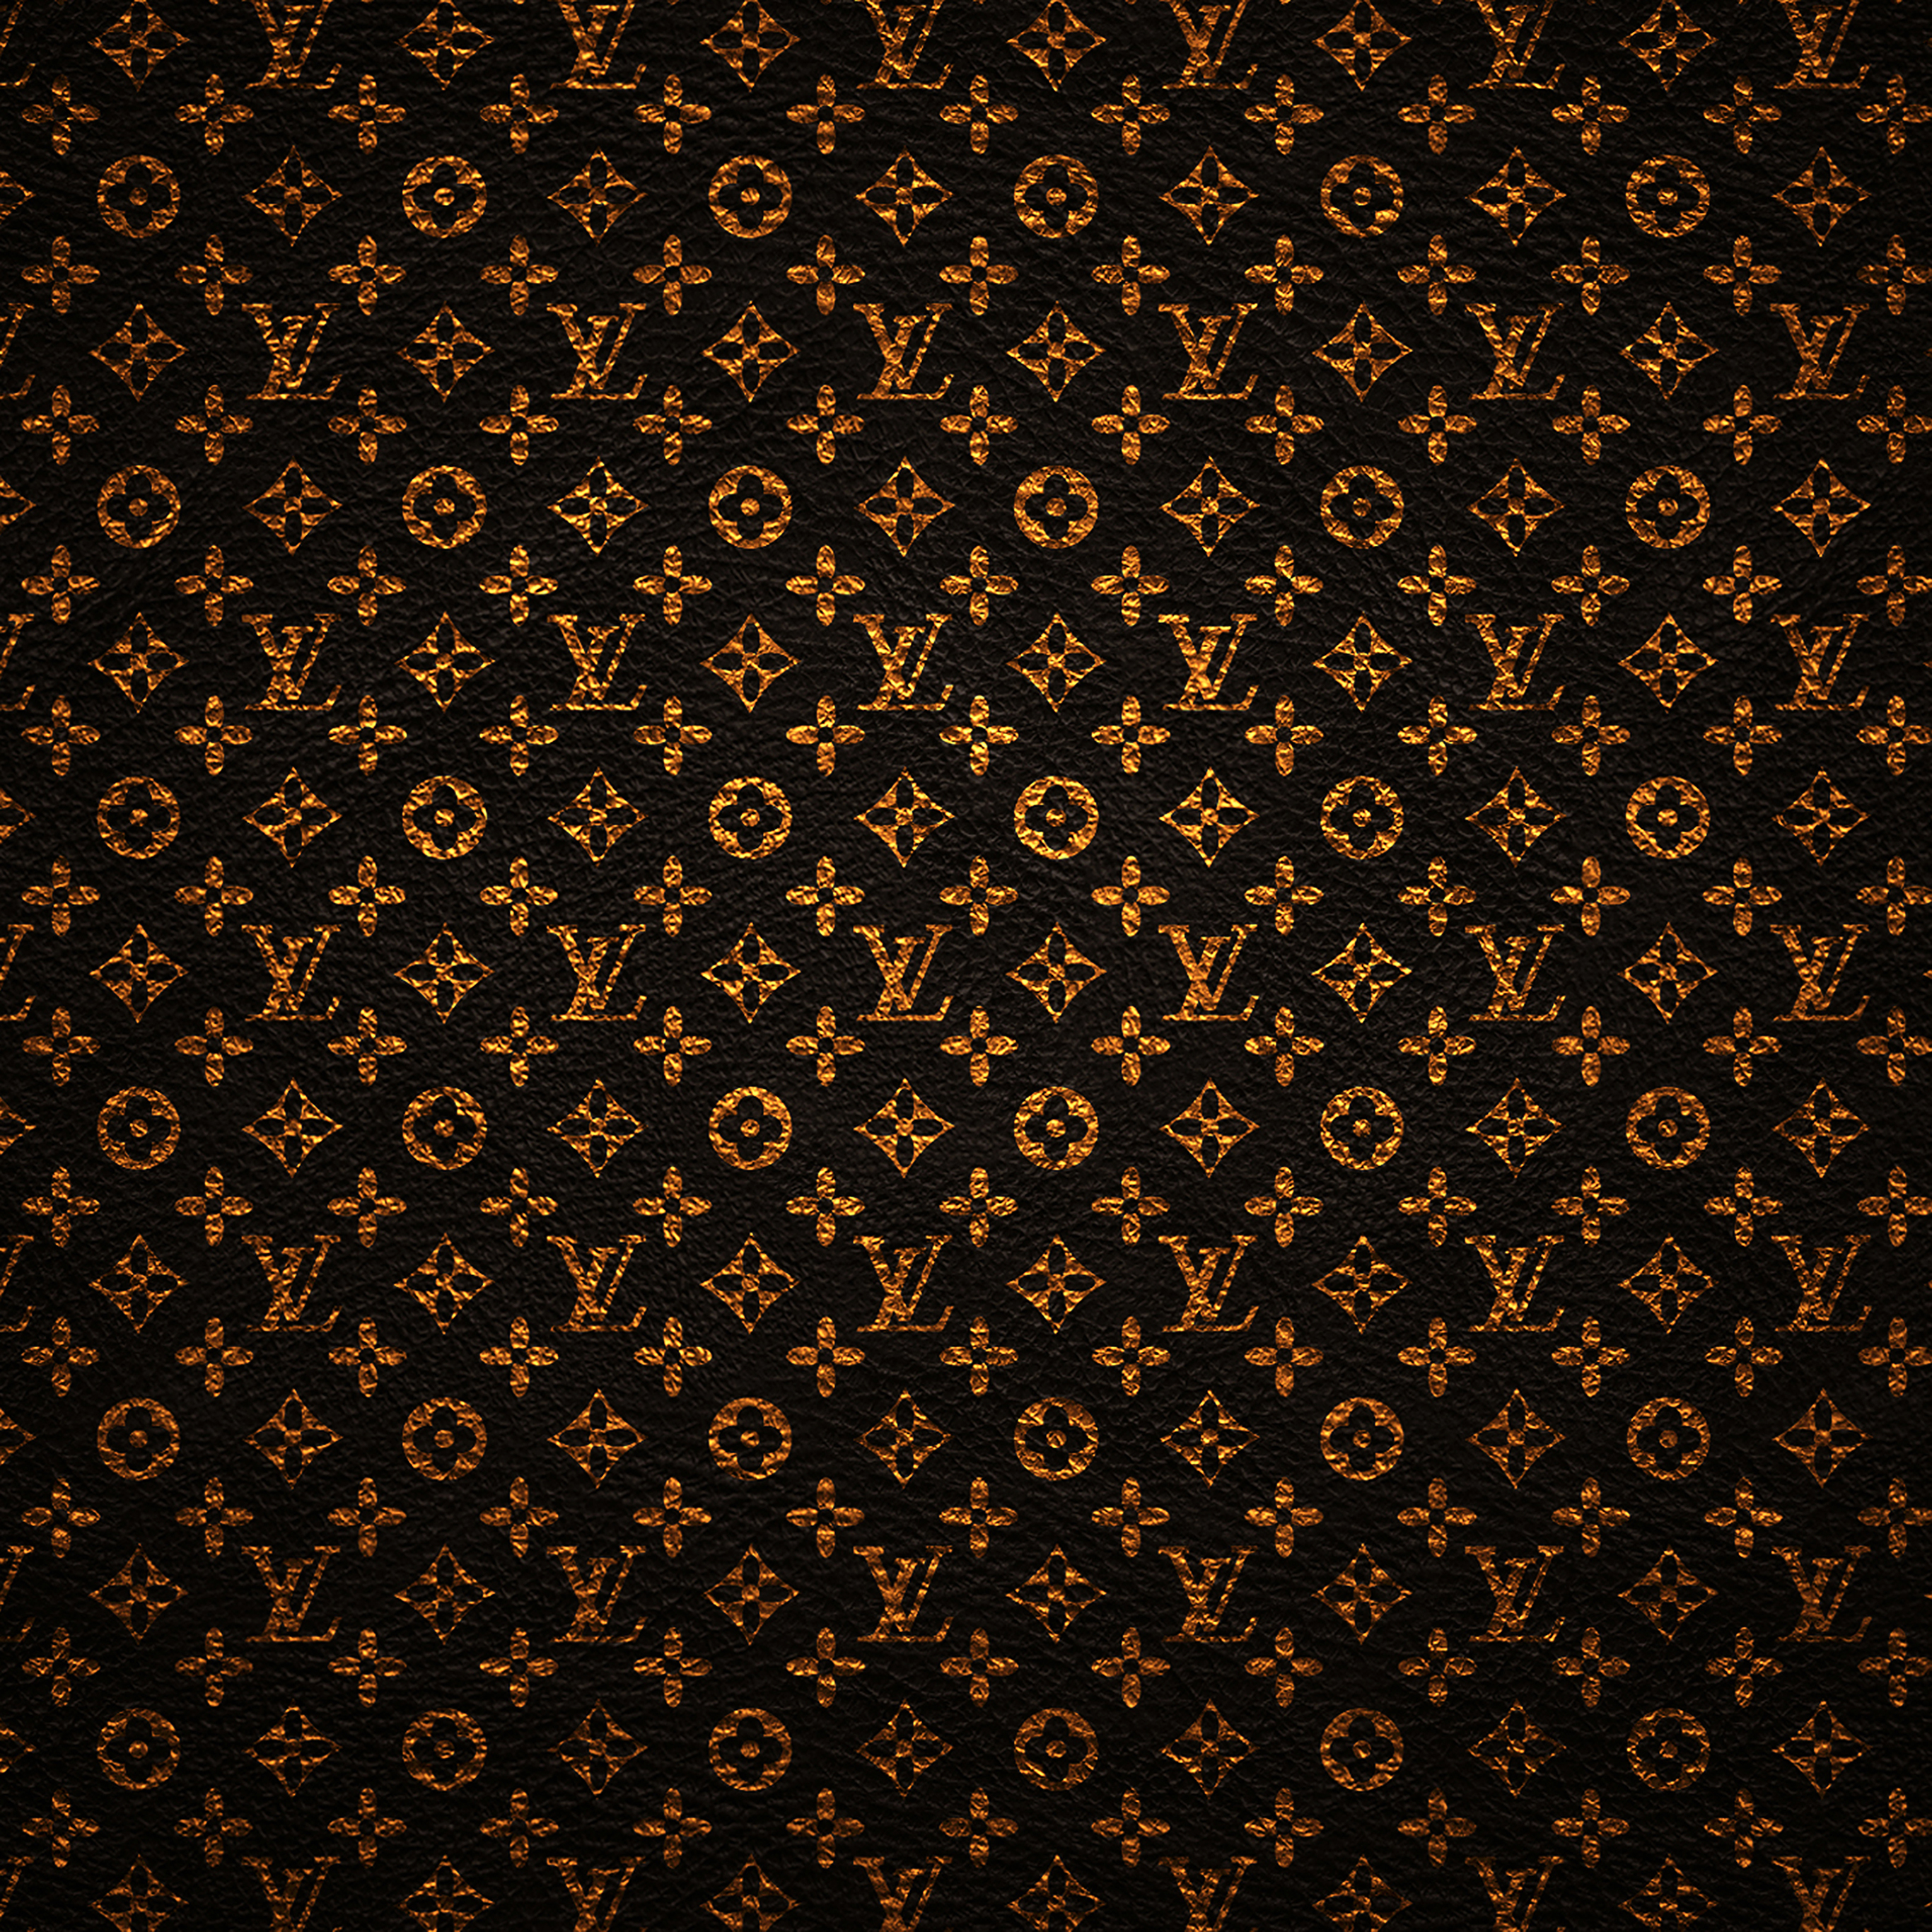 Vf20 Louis Vuitton Pattern Art Papers Co